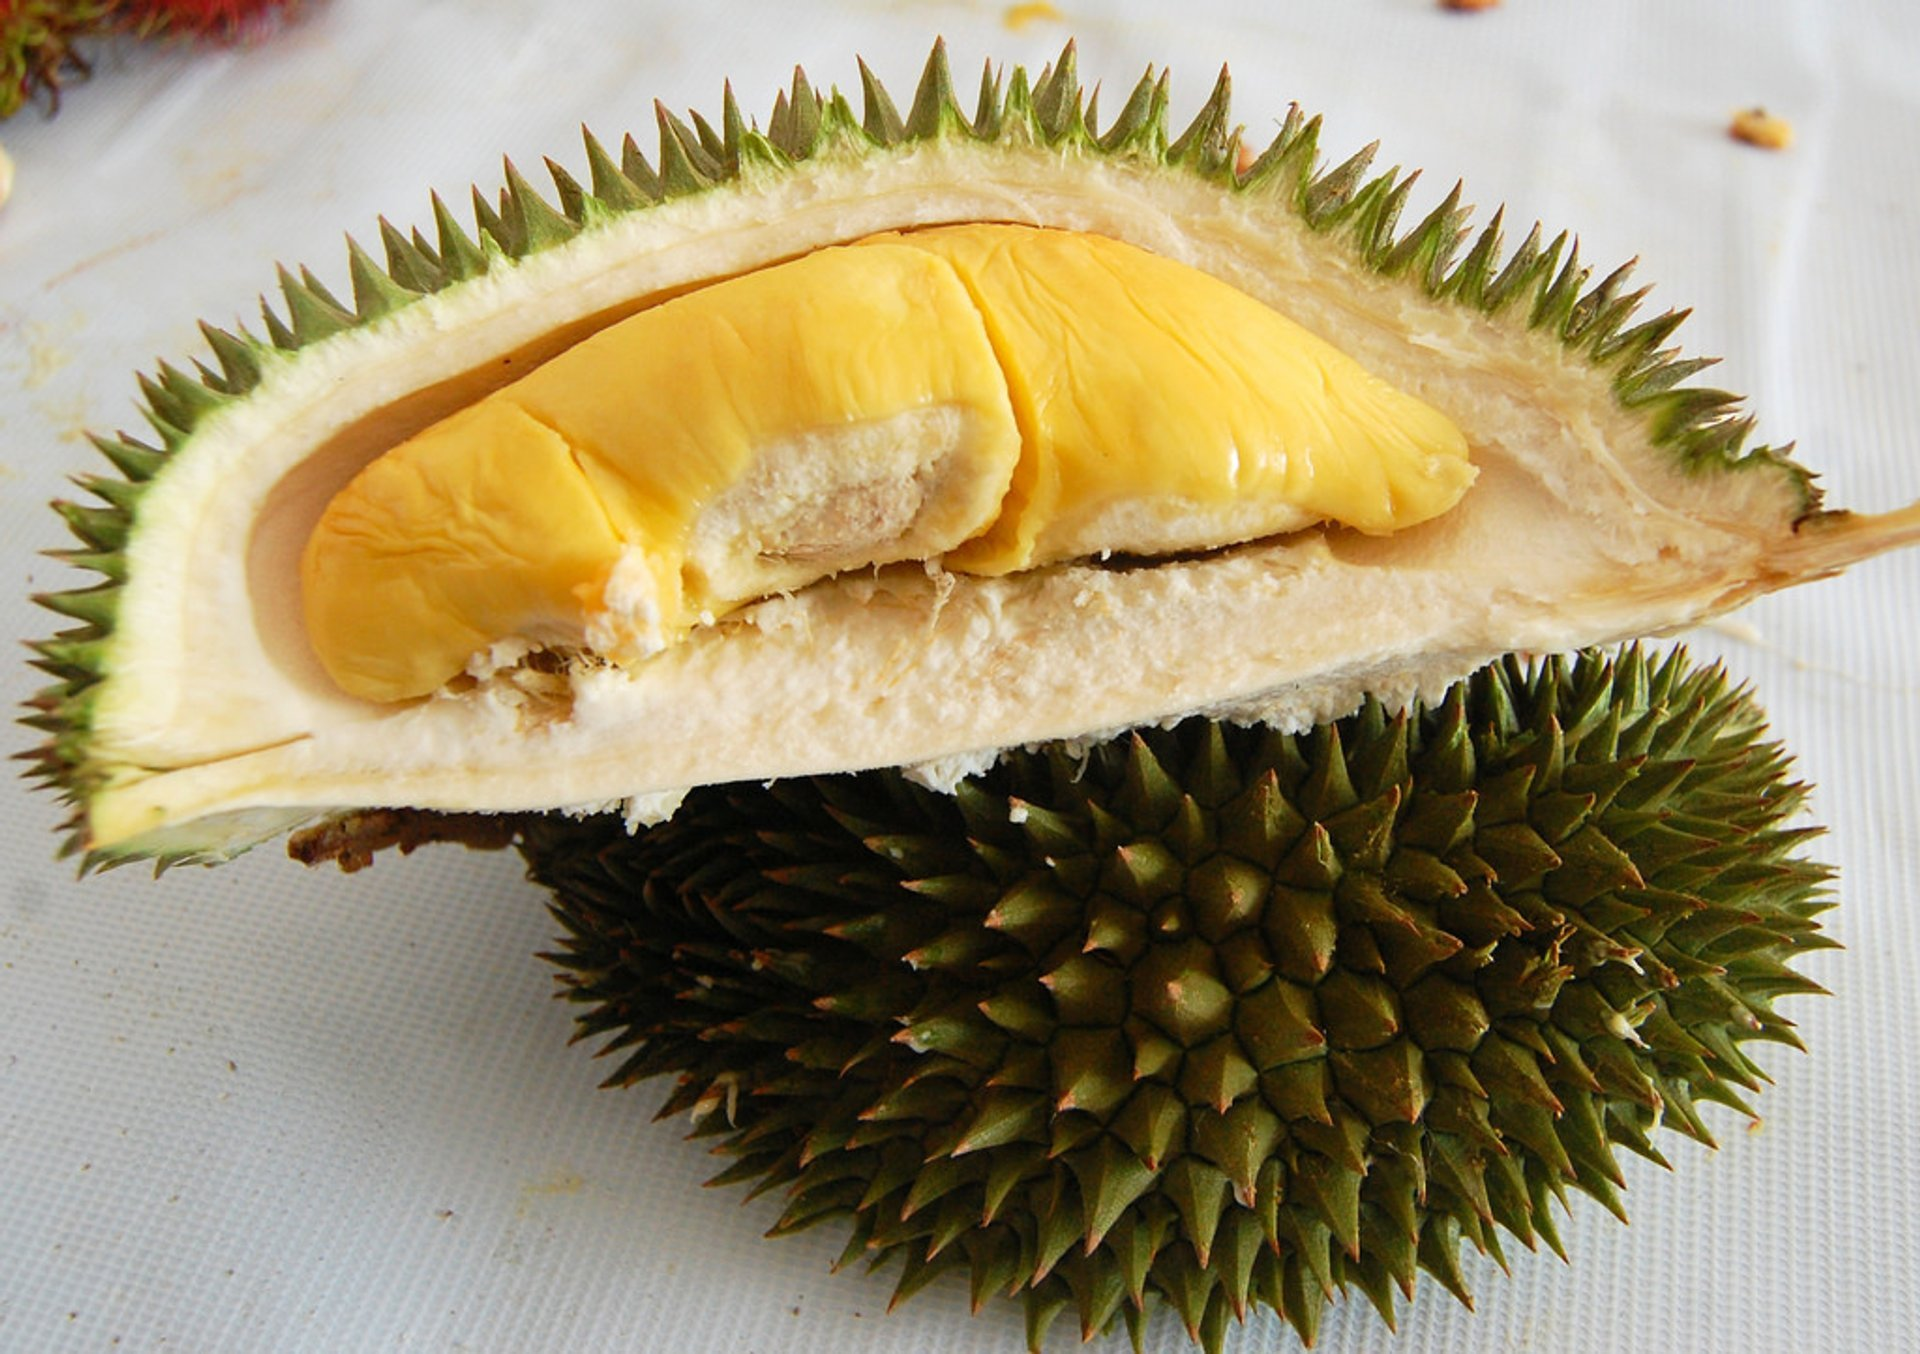 Durian in Bali 2020 - Best Time